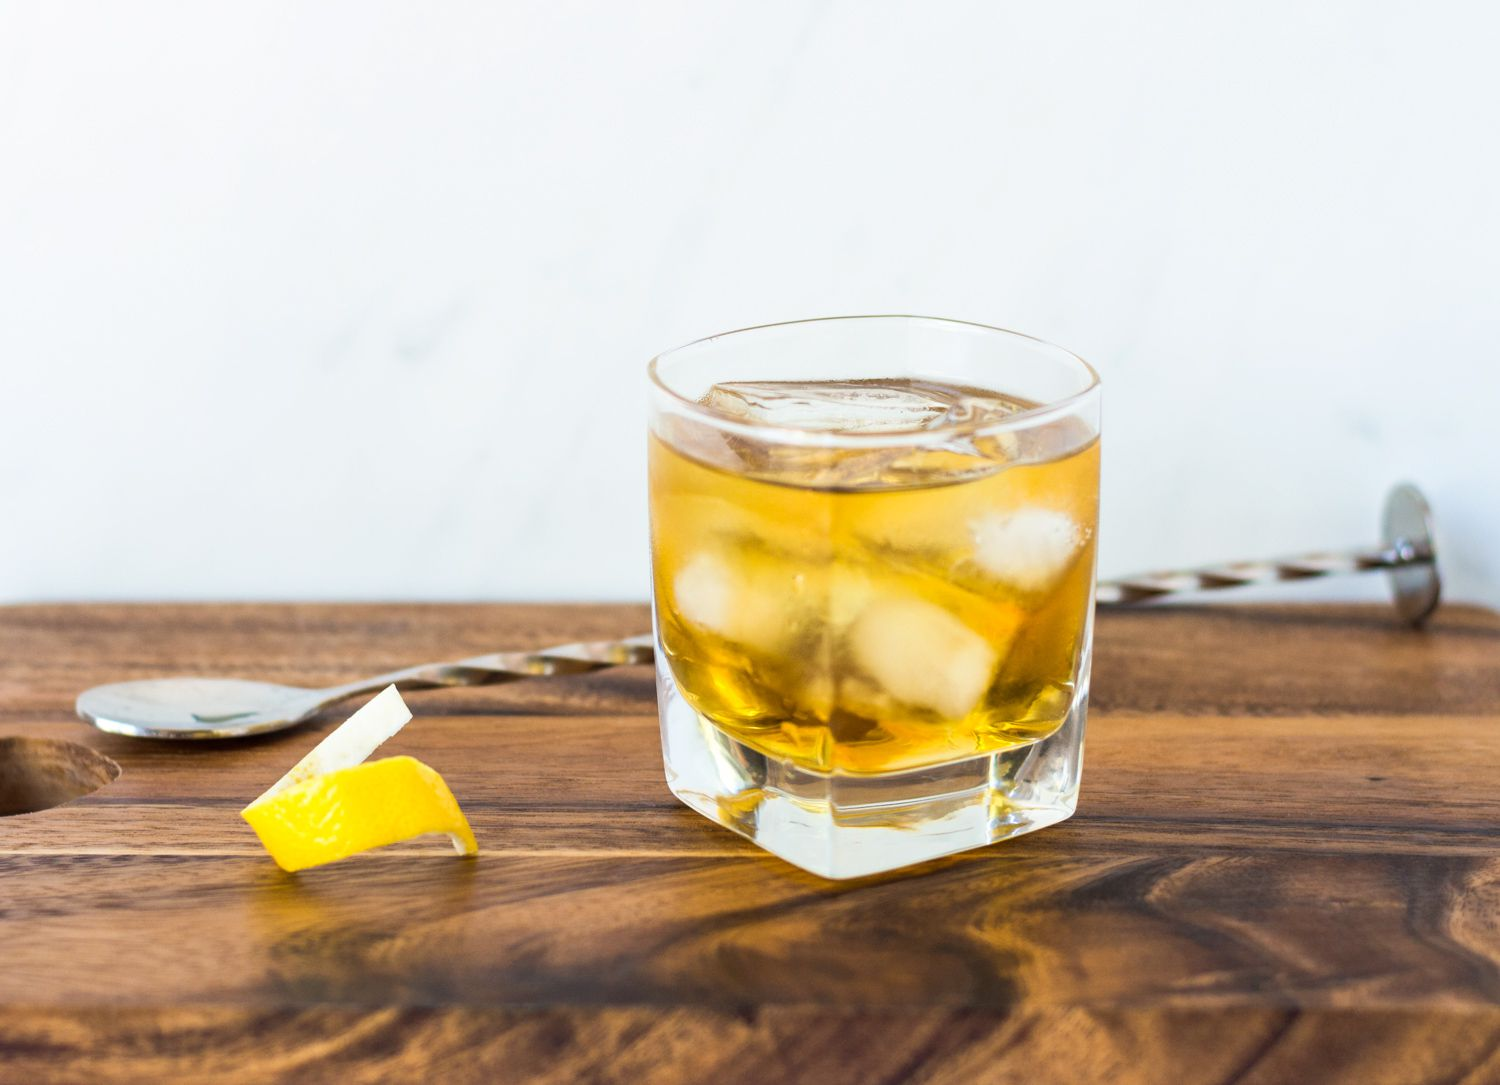 Rusty nail cocktail stirred well along with lemon twist